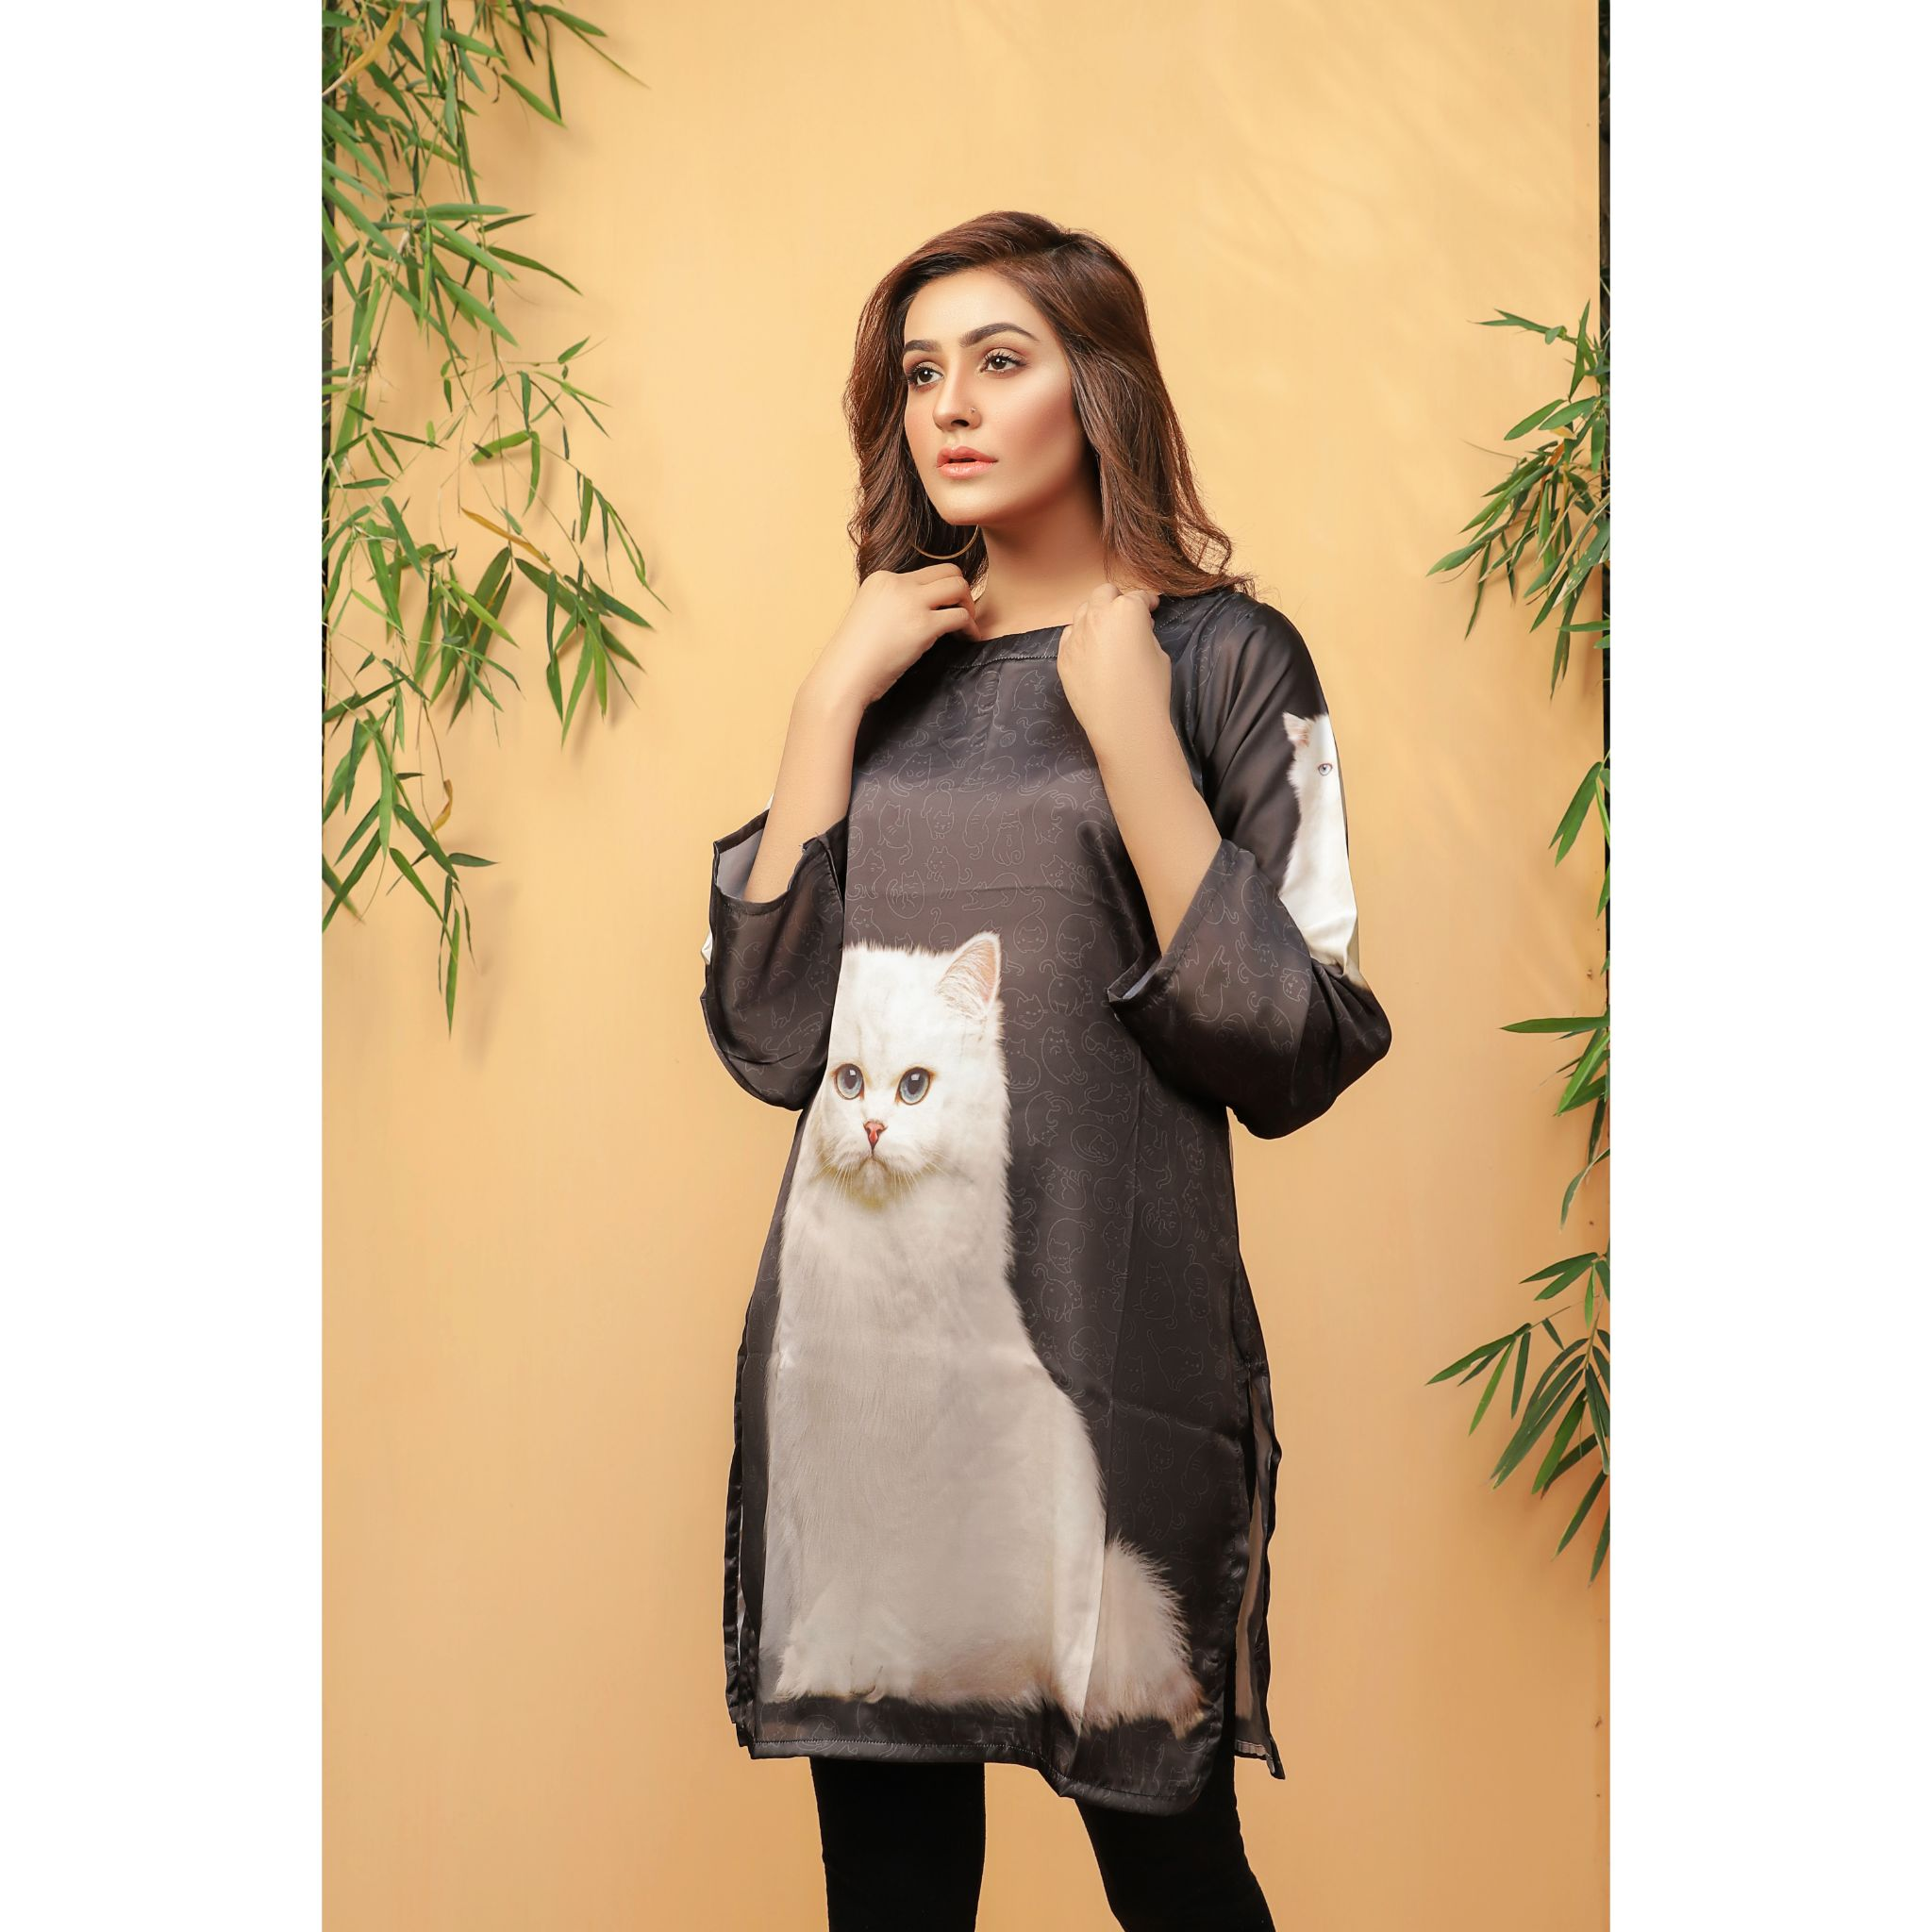 Super Fine 3D Cute Cat Silk Shirt For Women (CC-110)